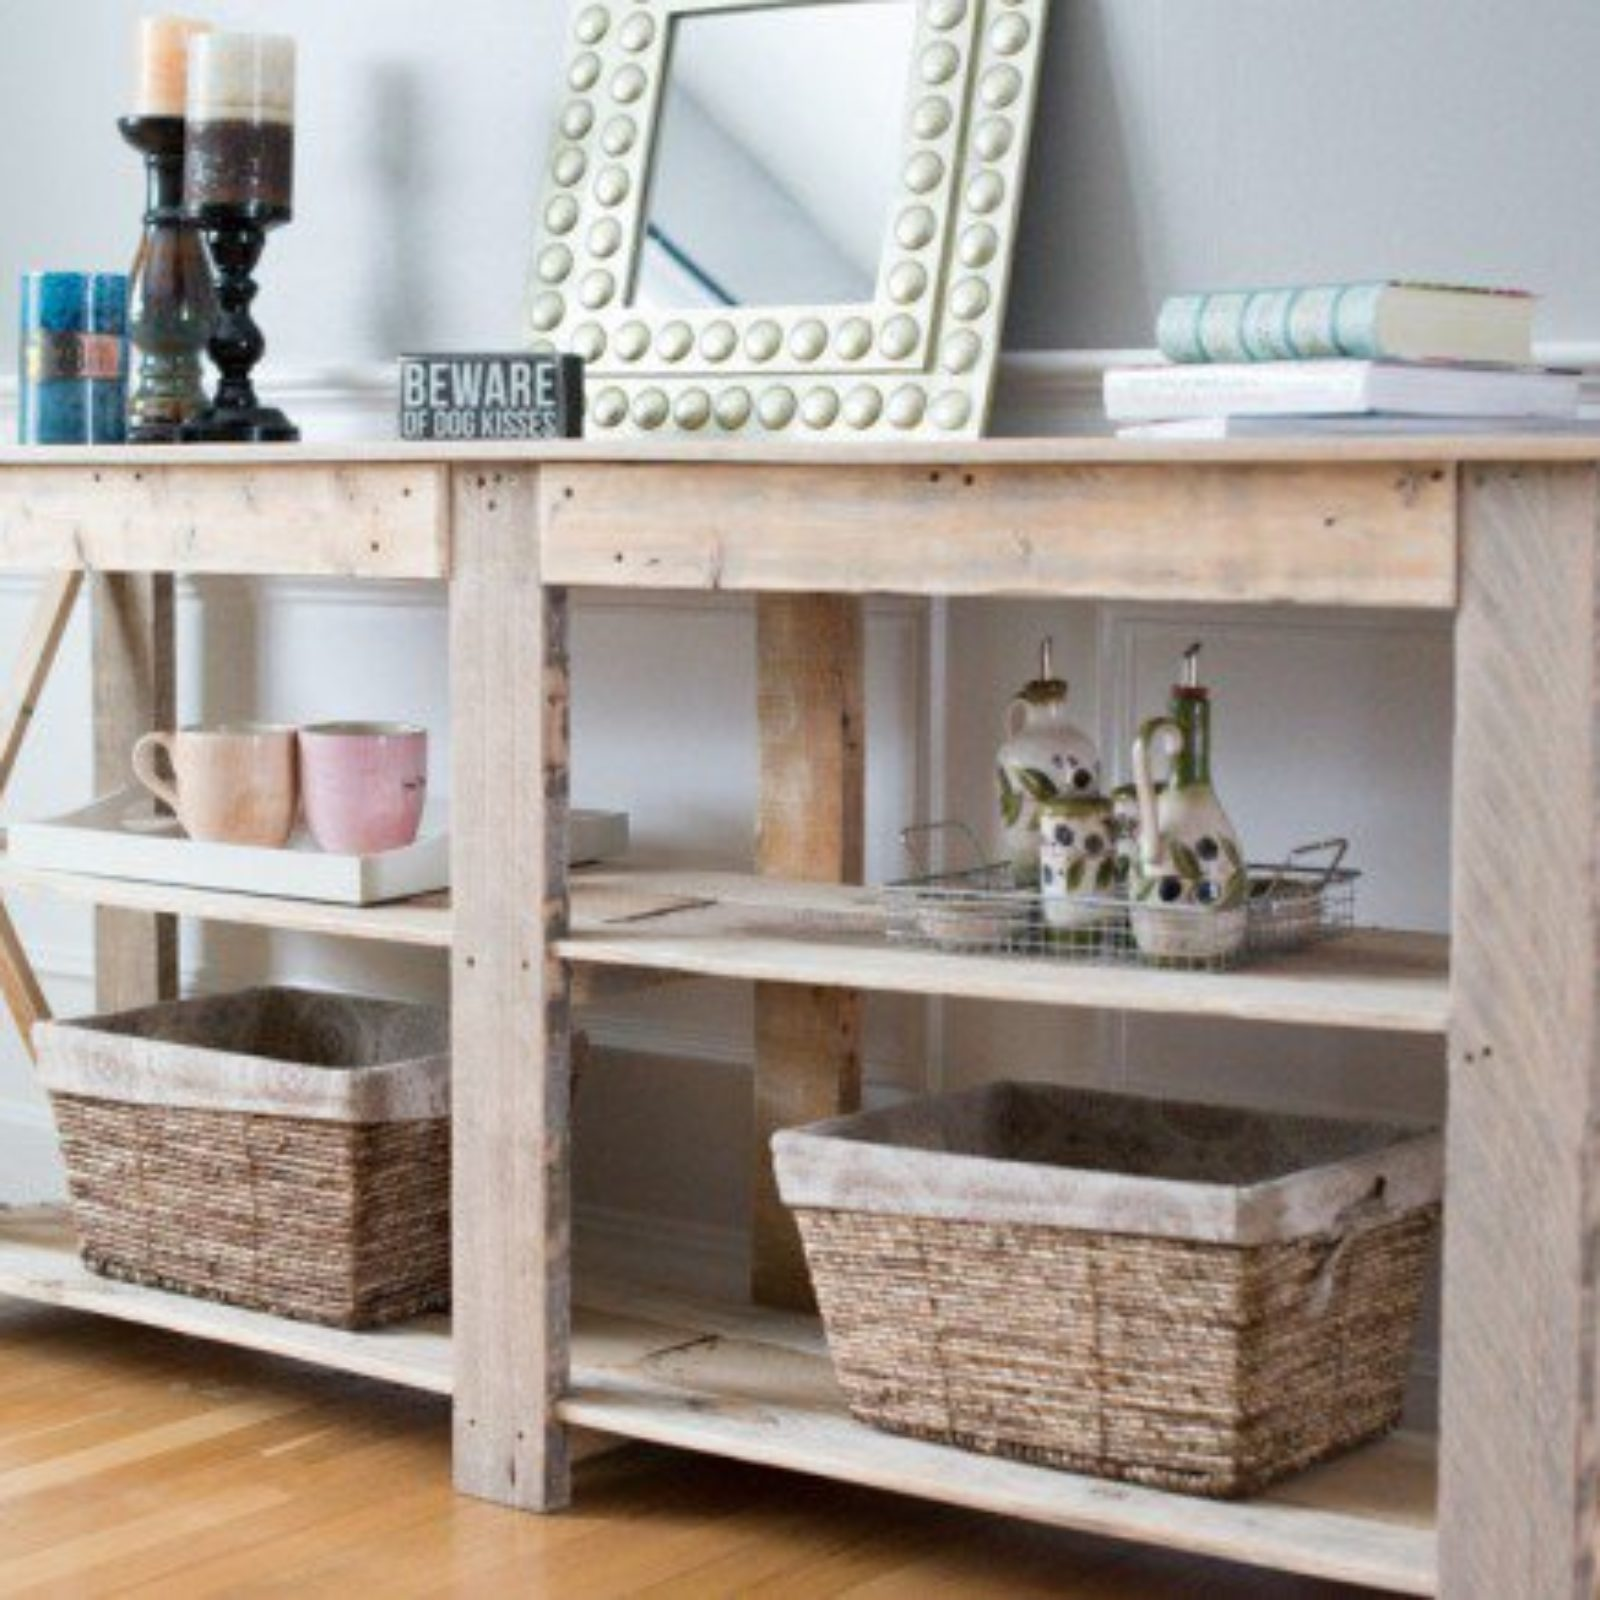 22-Genius-Handmade-Pallet-Furniture-Designs-That-You-Can-Make-By-Yourself-2-630×435